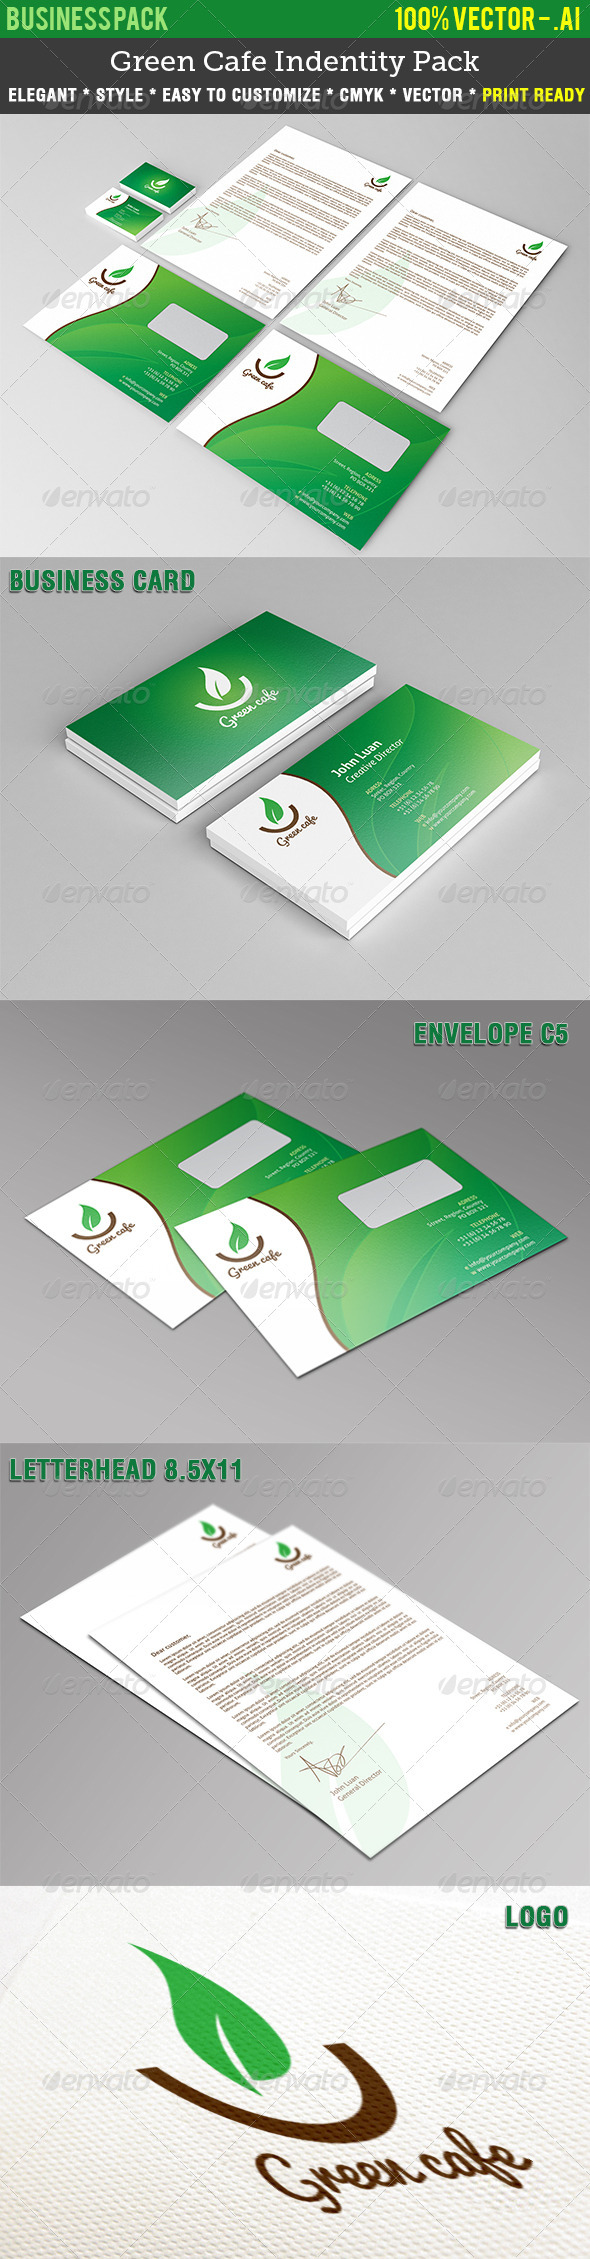 Green Cafe Indentity Pack - Stationery Print Templates